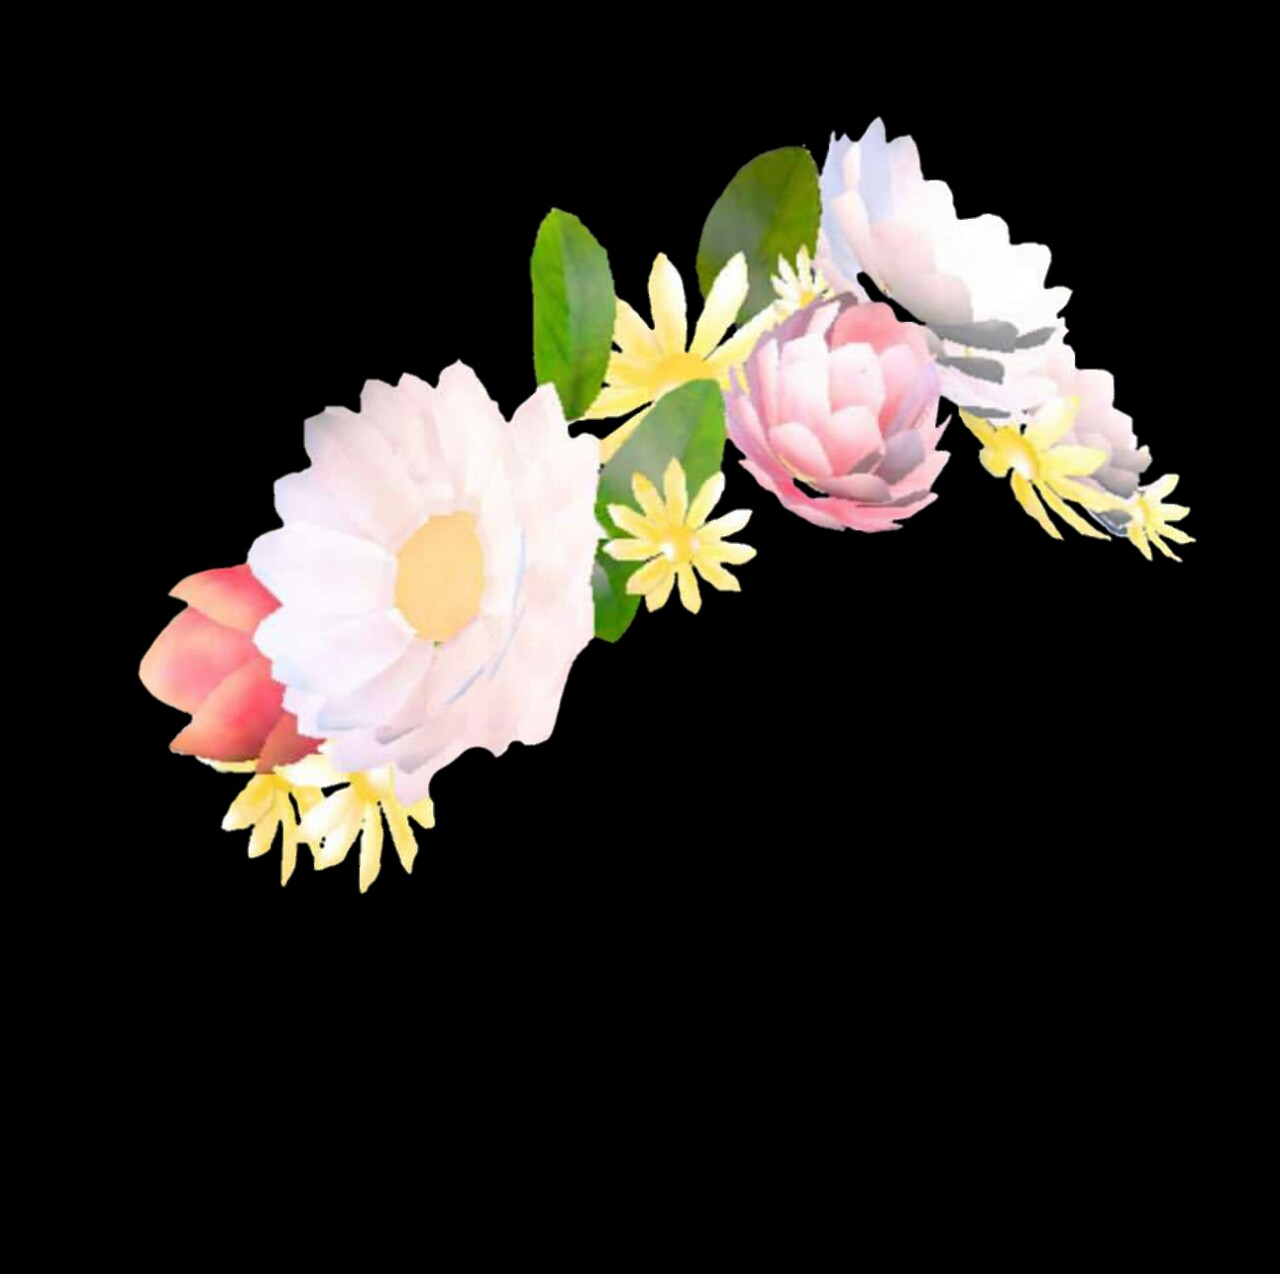 Snapchat Flower Crown Png, png collections at sccpre.cat.